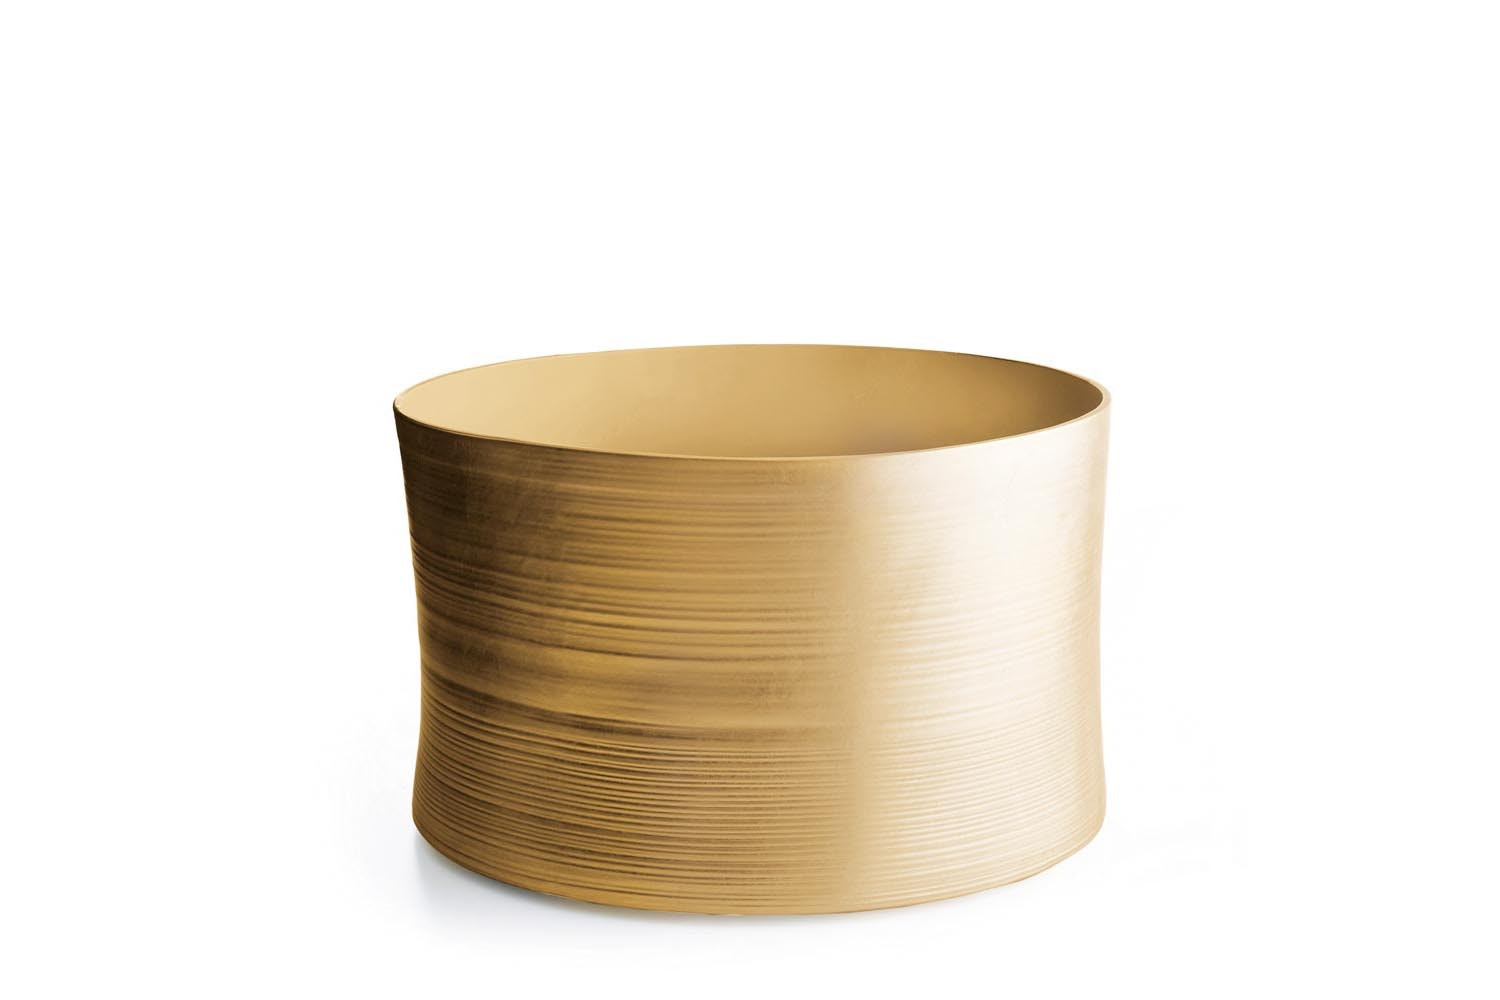 Gold Collection Vase & Stool by Marcel Wanders for B&B Italia